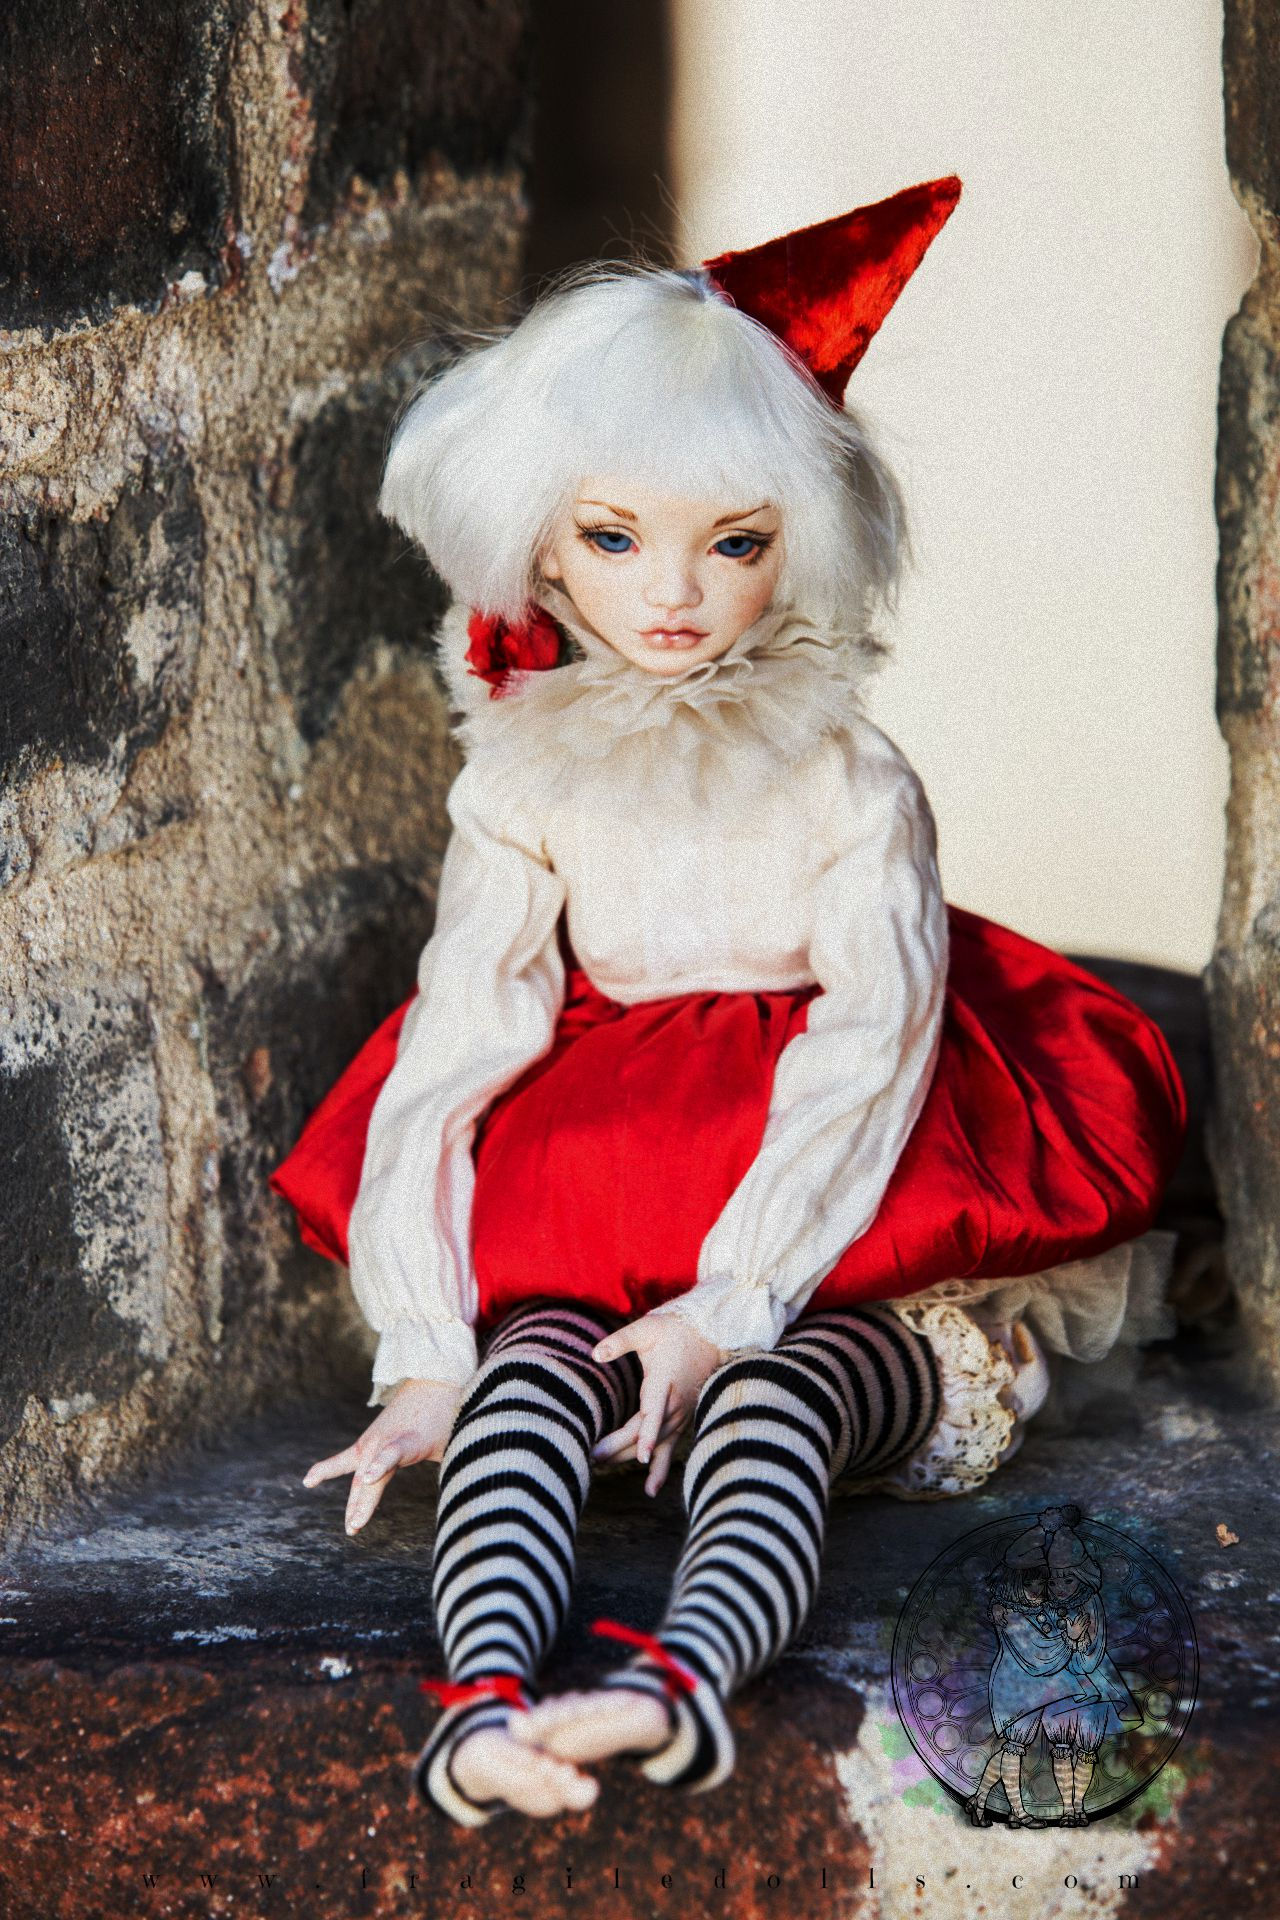 doll joodella bjd porcelain fragiledolls red art